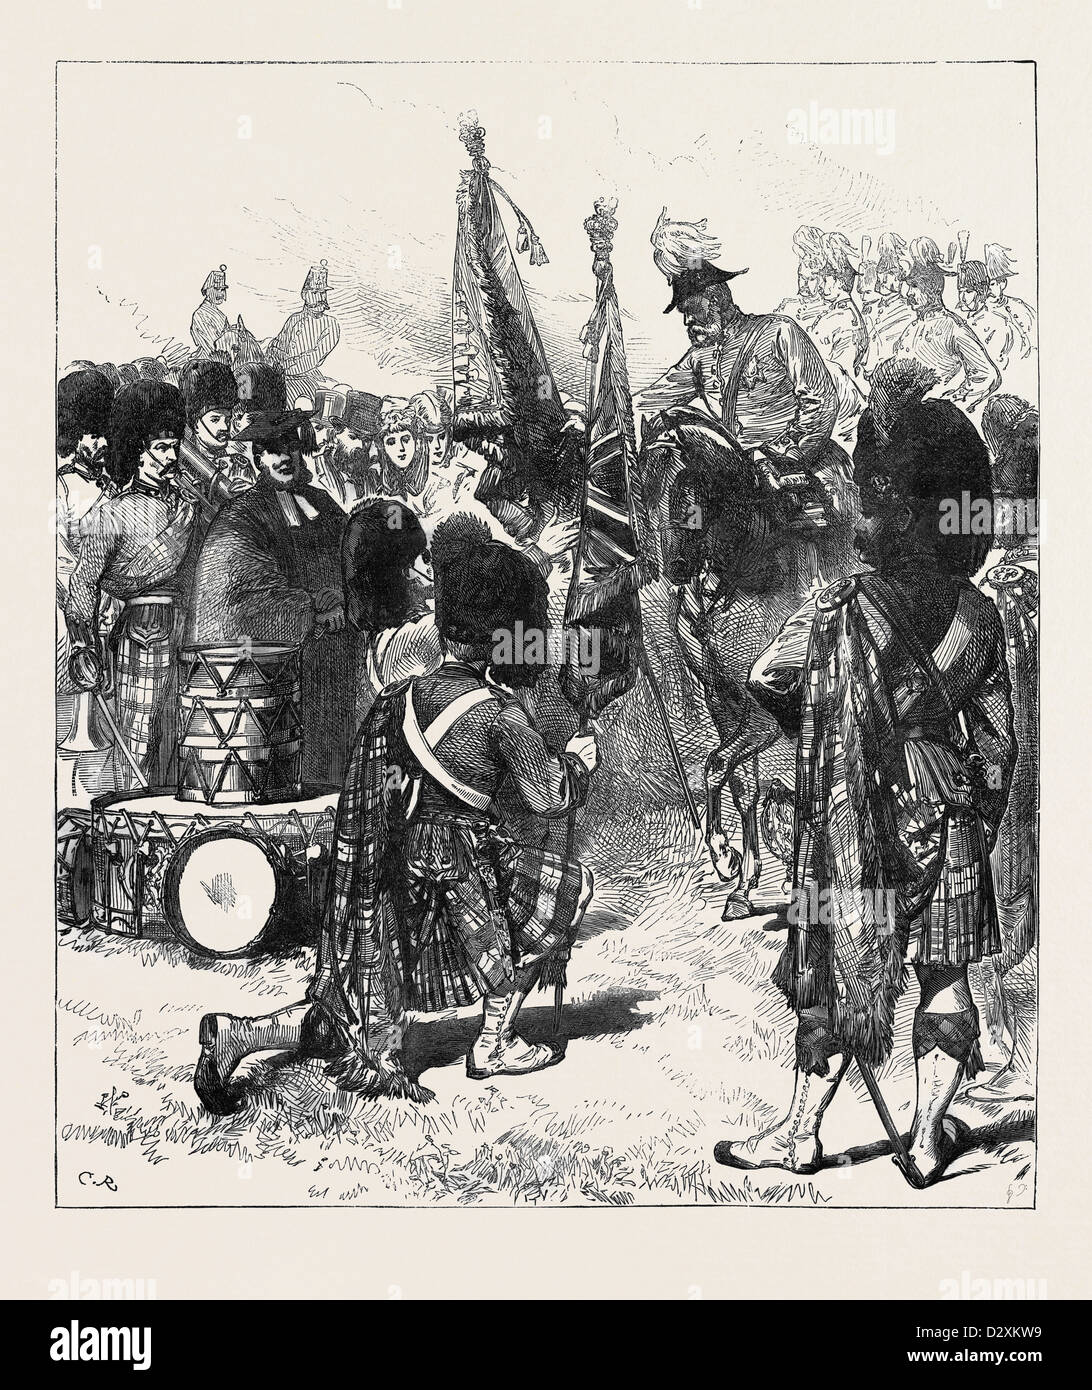 PRESENTATION OF NEW COLOURS TO THE 42ND HIGHLANDERS 1871 - Stock Image